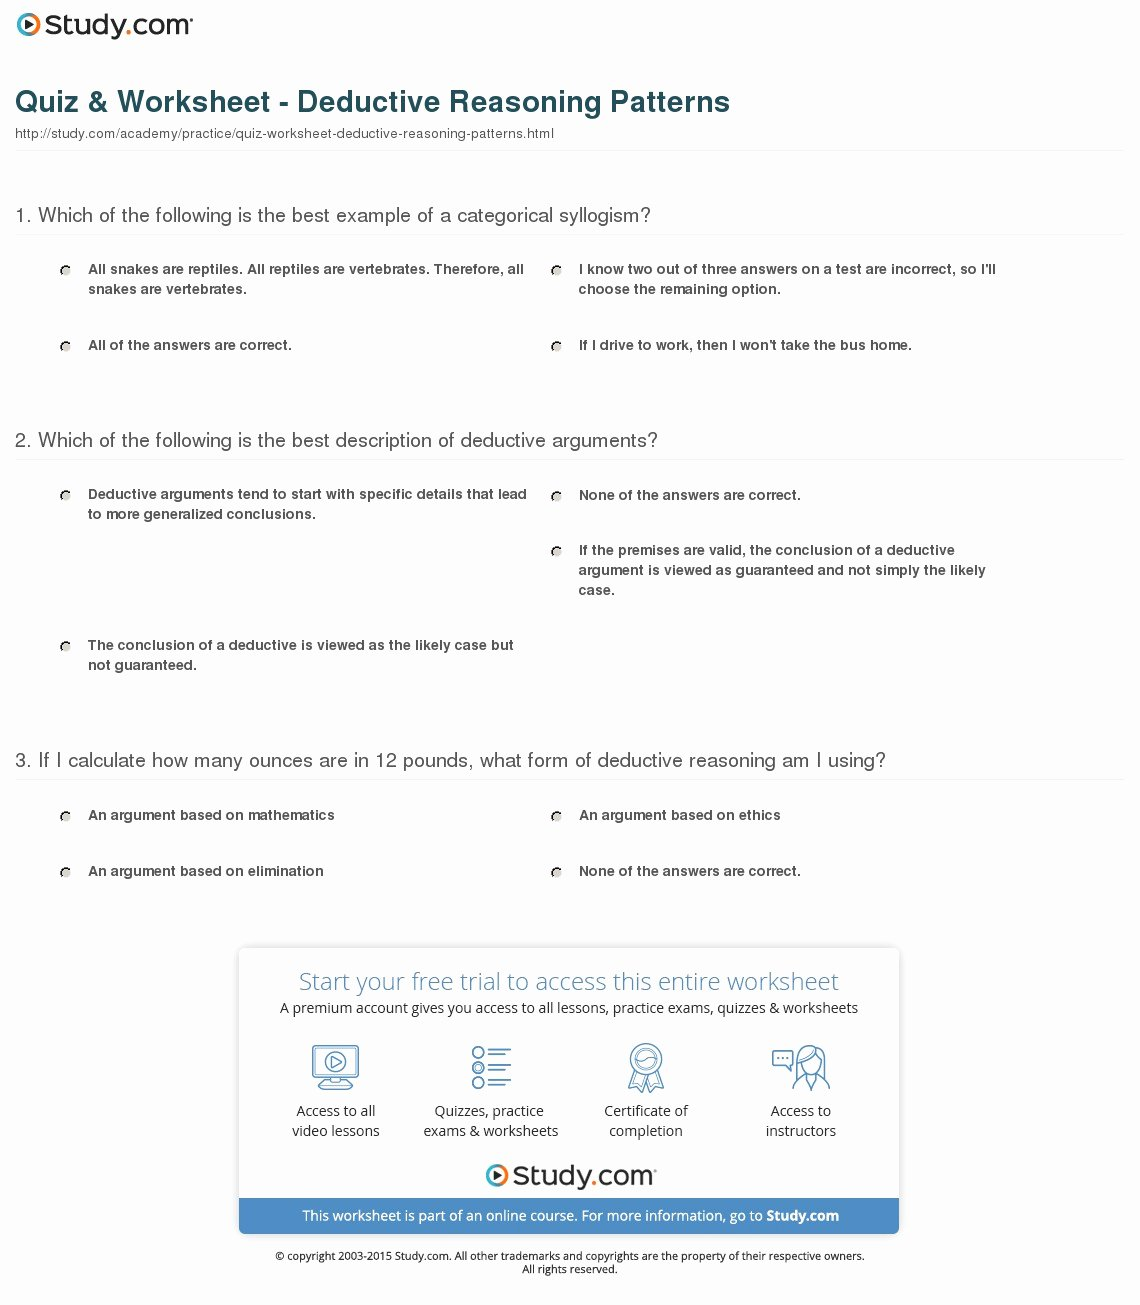 Inductive and Deductive Reasoning Worksheet New Quiz & Worksheet Deductive Reasoning Patterns